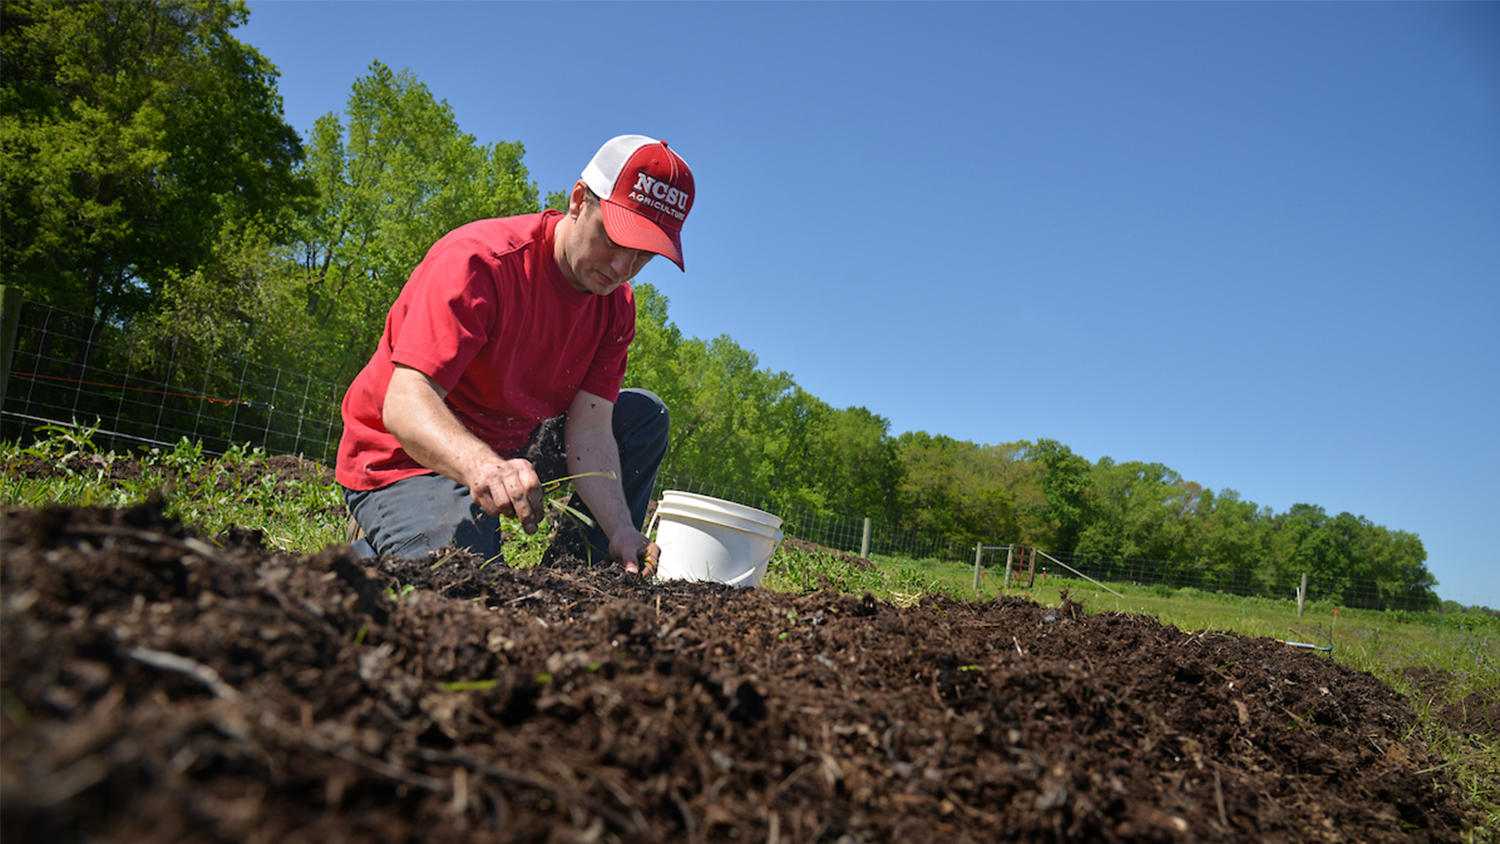 Student in red hat digs in garden soil